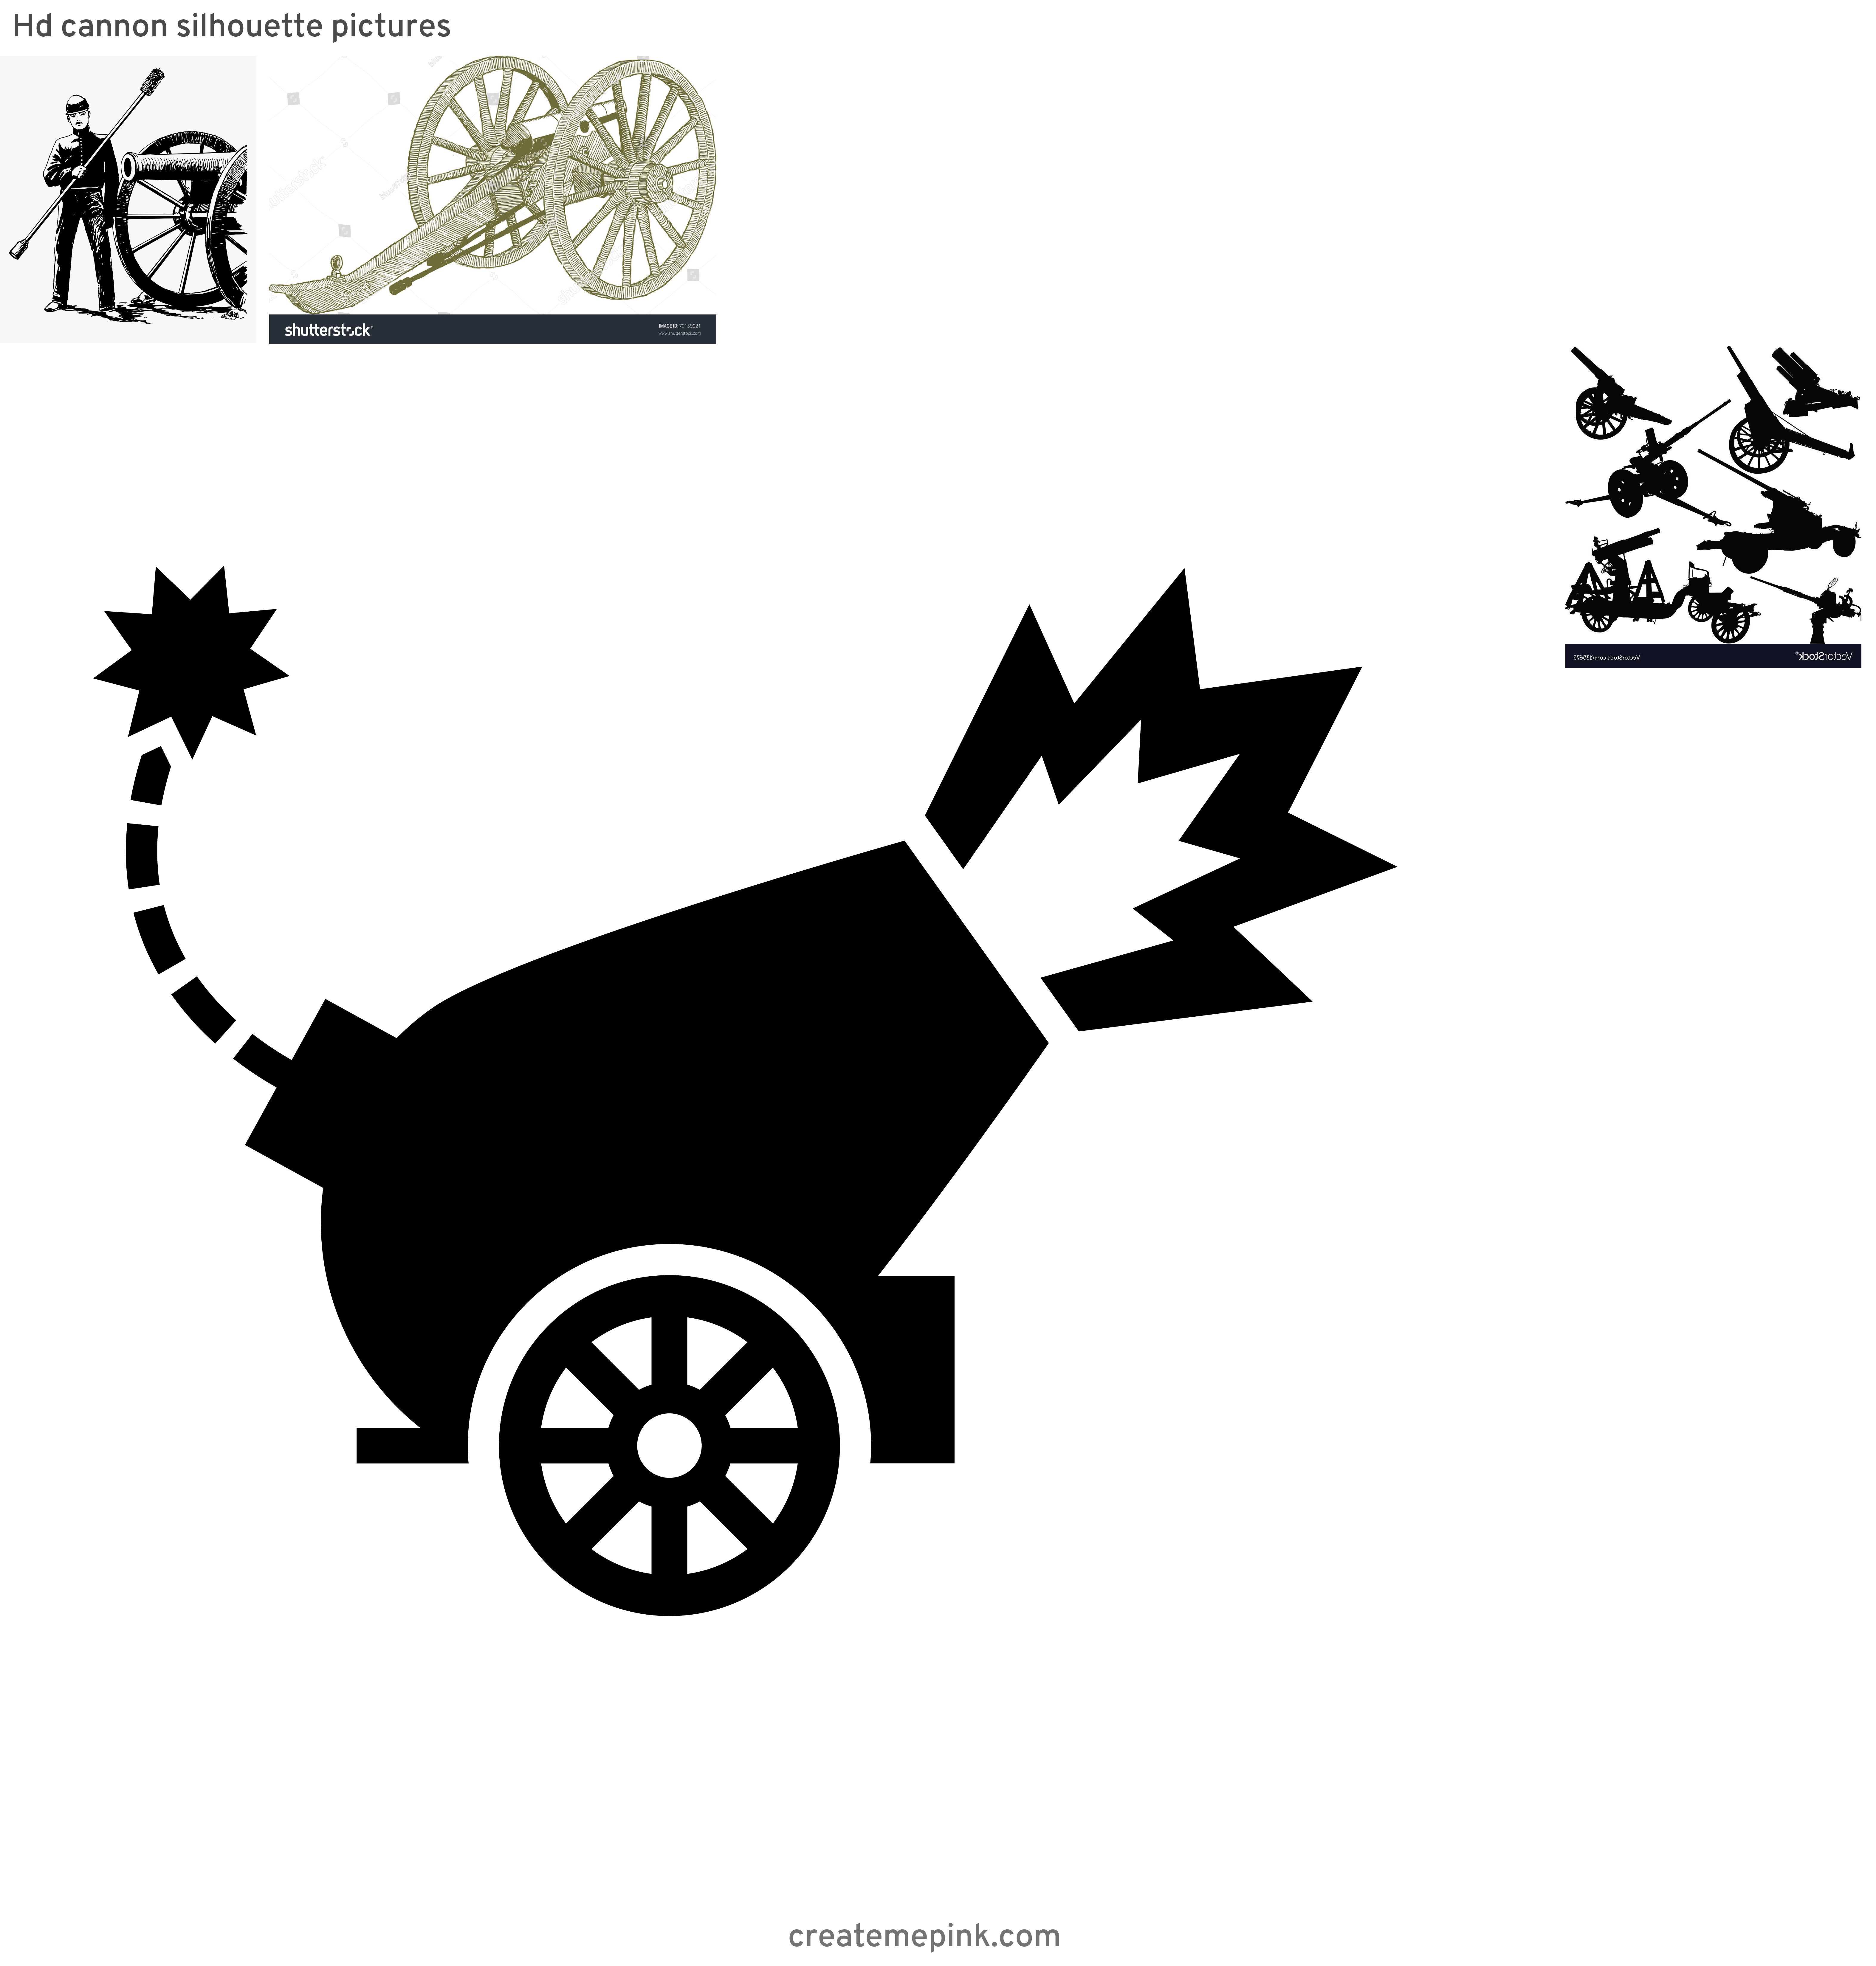 Civil War Cannon Vector: Hd Cannon Silhouette Pictures